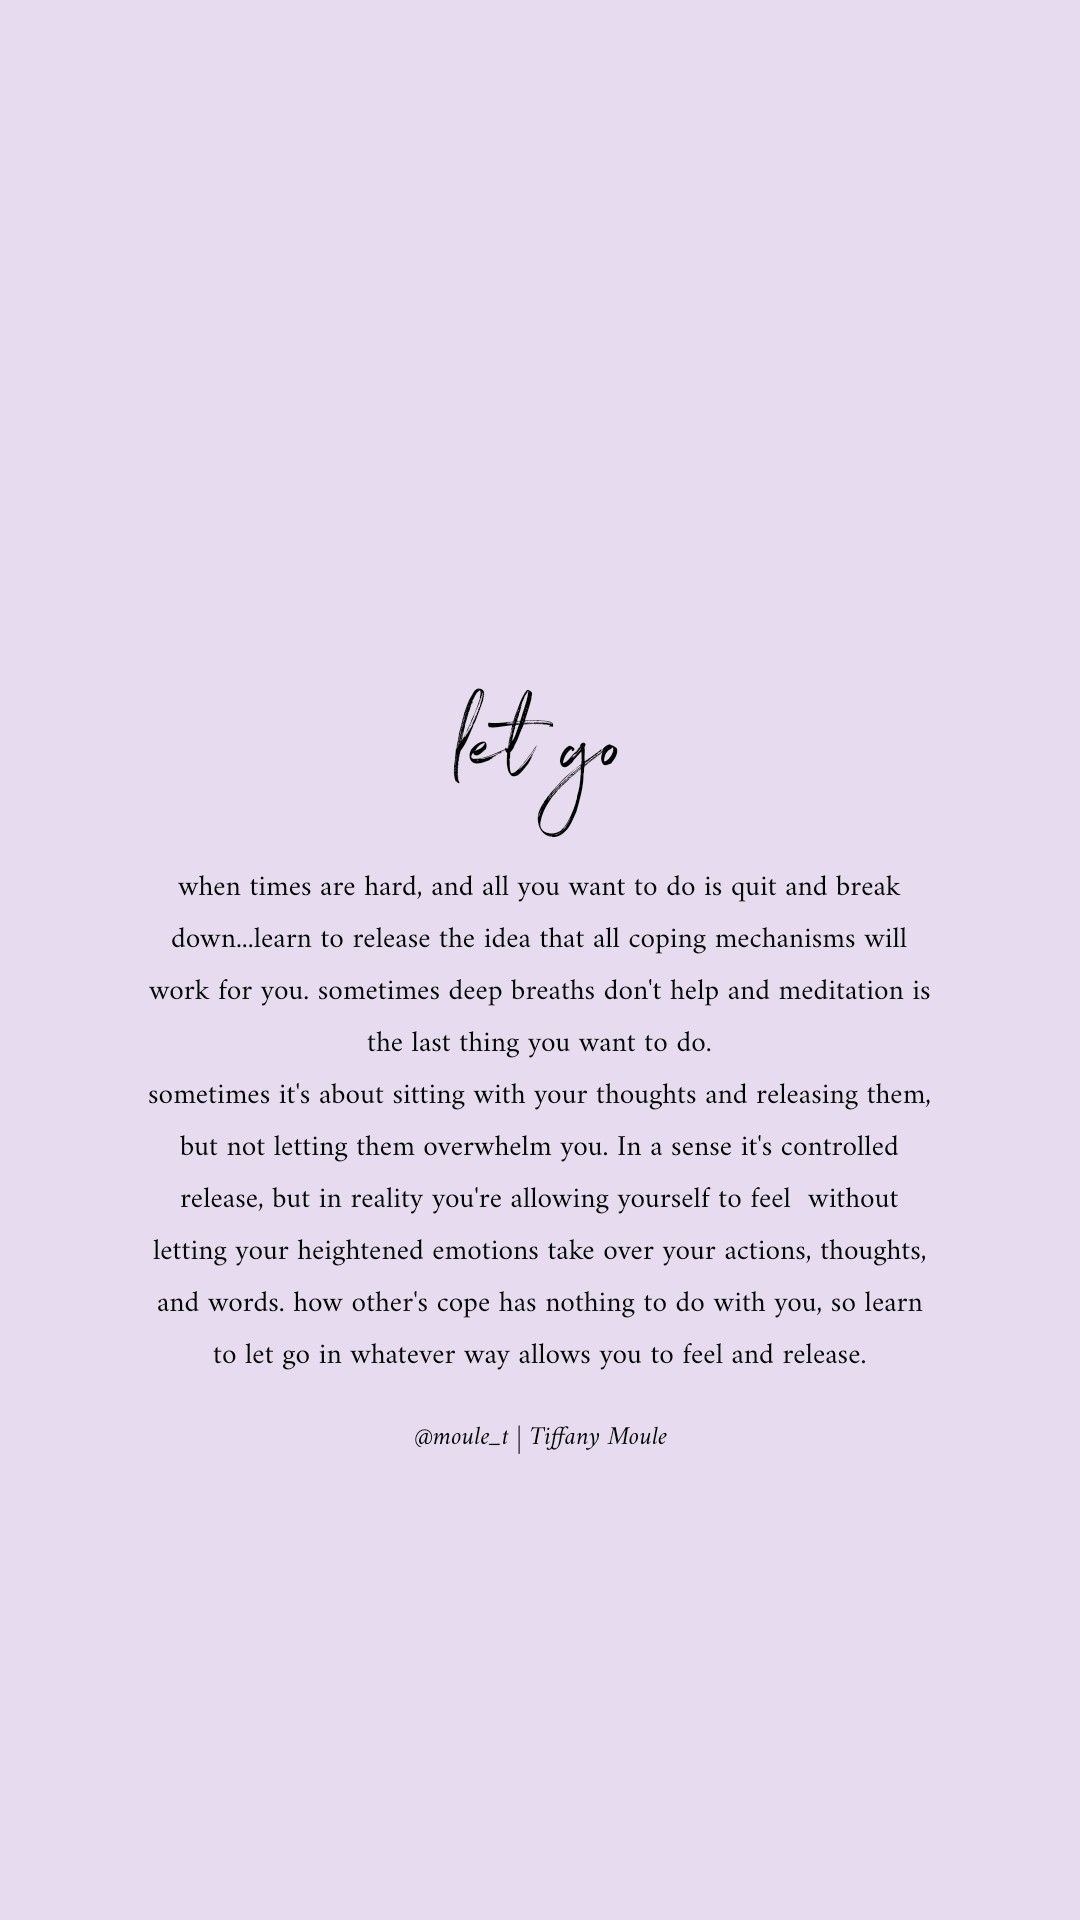 Learn to let go so you can release ♥️ #quote #selflove #copingmechanisms #selfcarequote